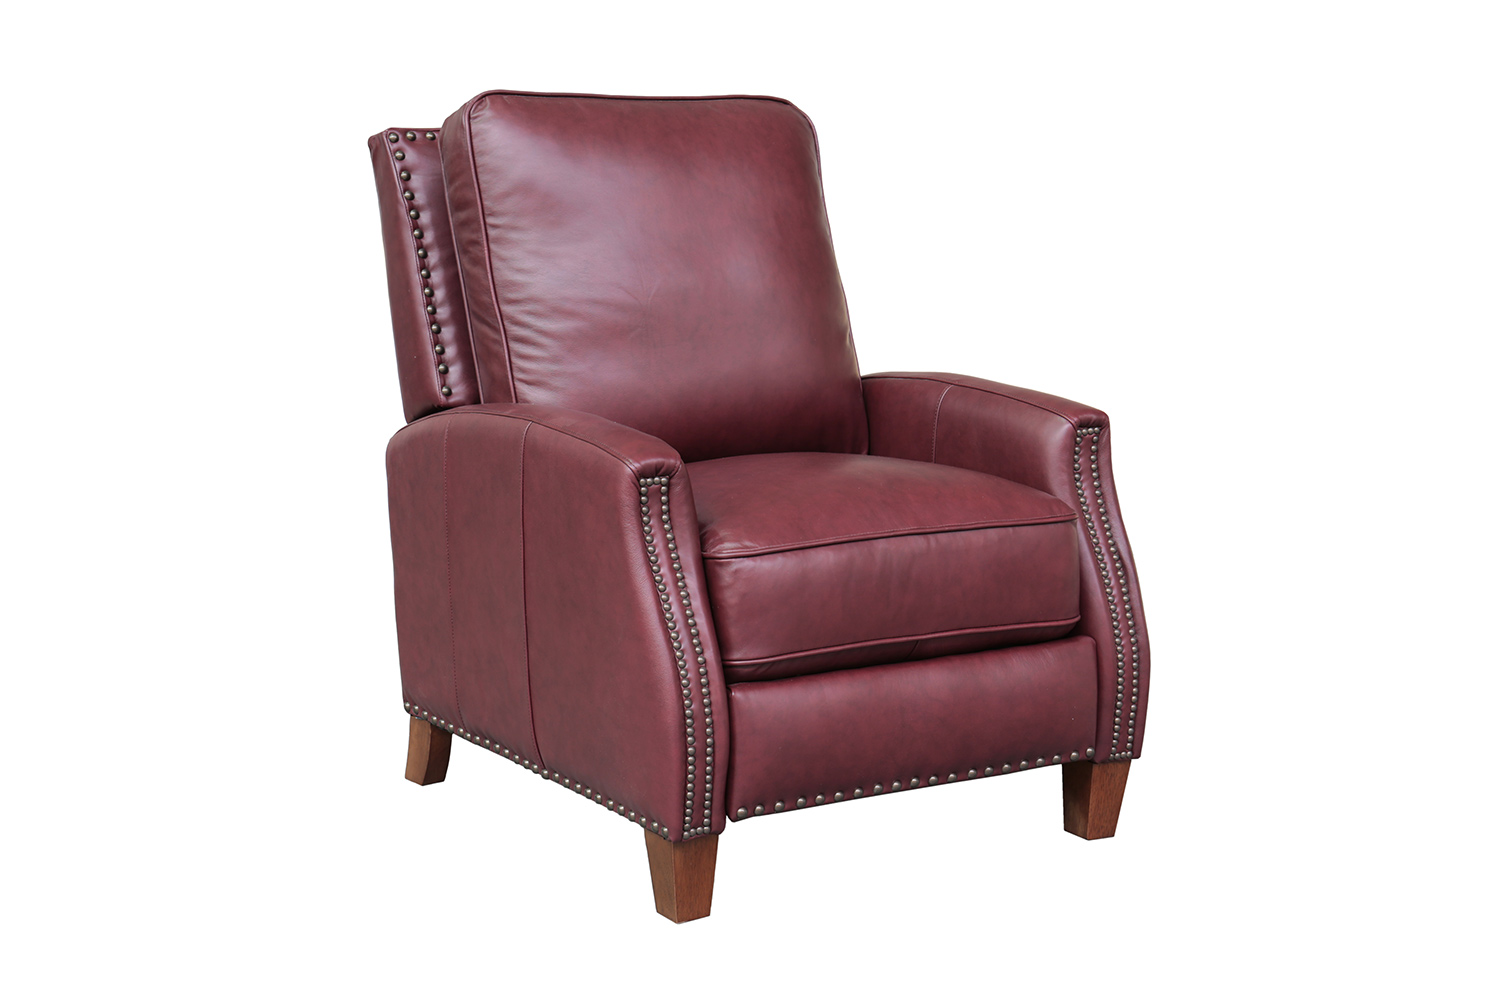 Barcalounger Melrose Recliner Chair - Shoreham Wine/All Leather